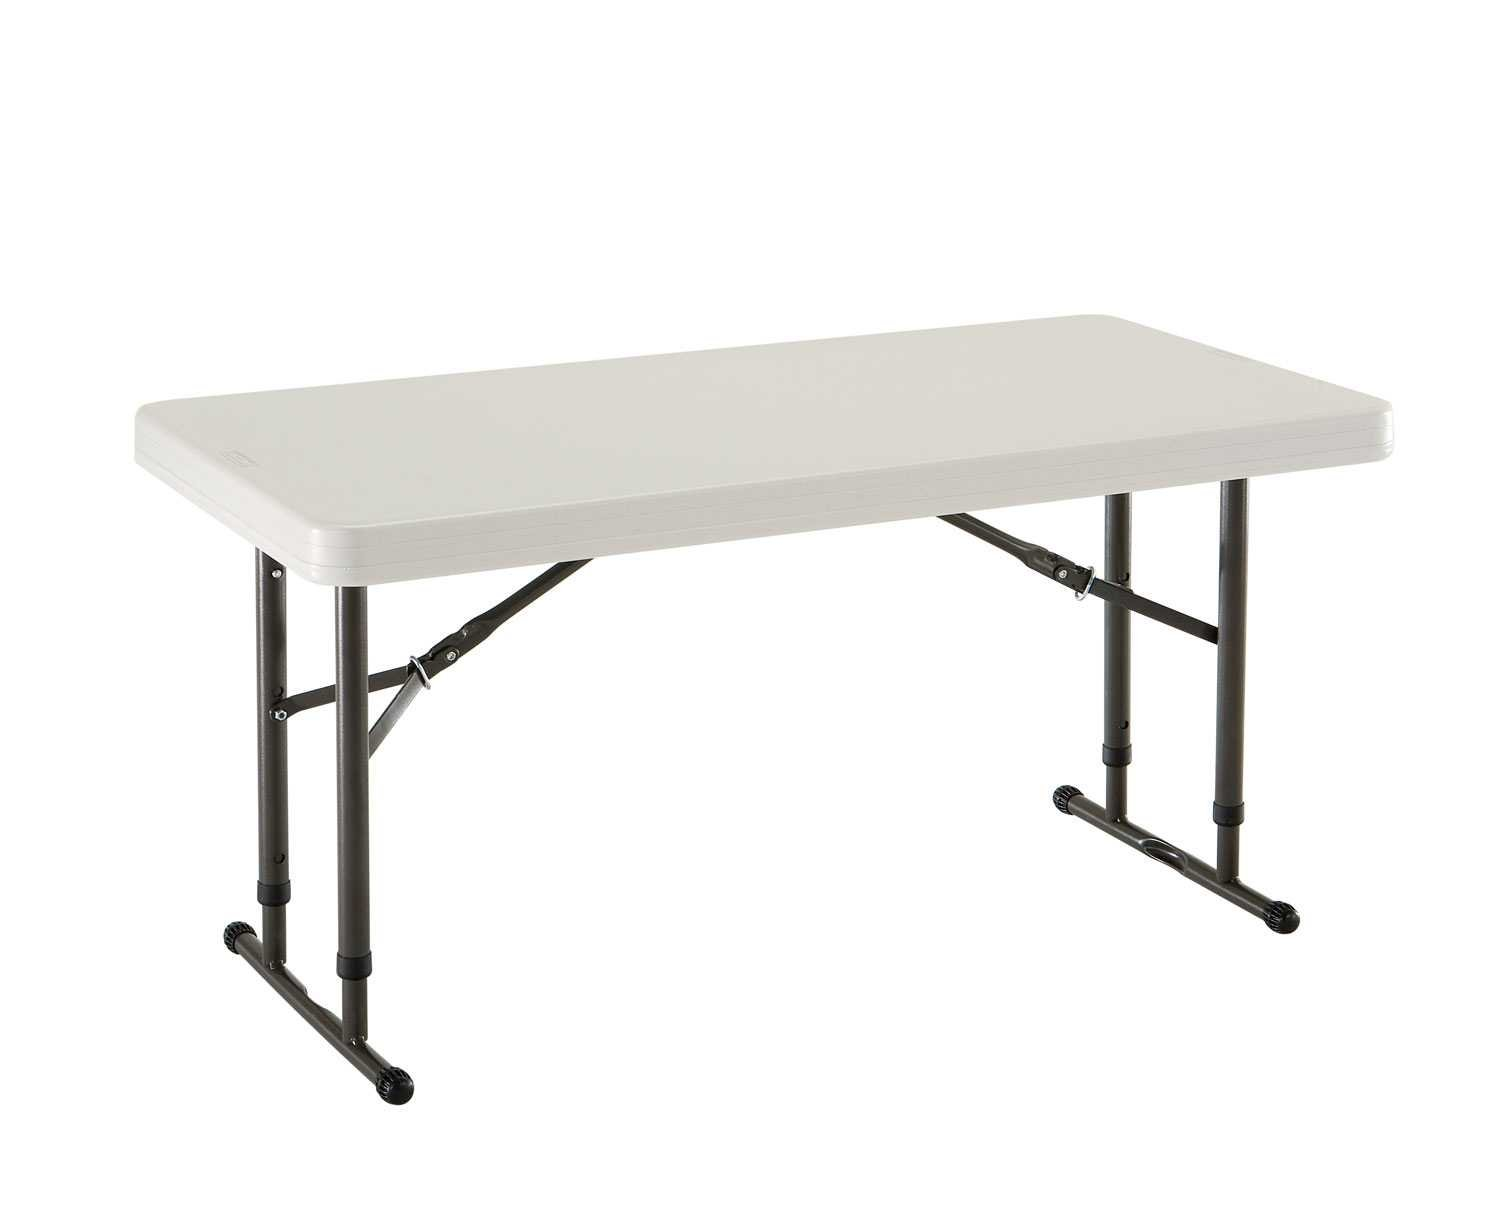 Amazon.com: Lifetime 80161 4 Foot Commercial Adjustable Height Folding Table,  Almond Tabletop With Bronze Frame: Kitchen U0026 Dining